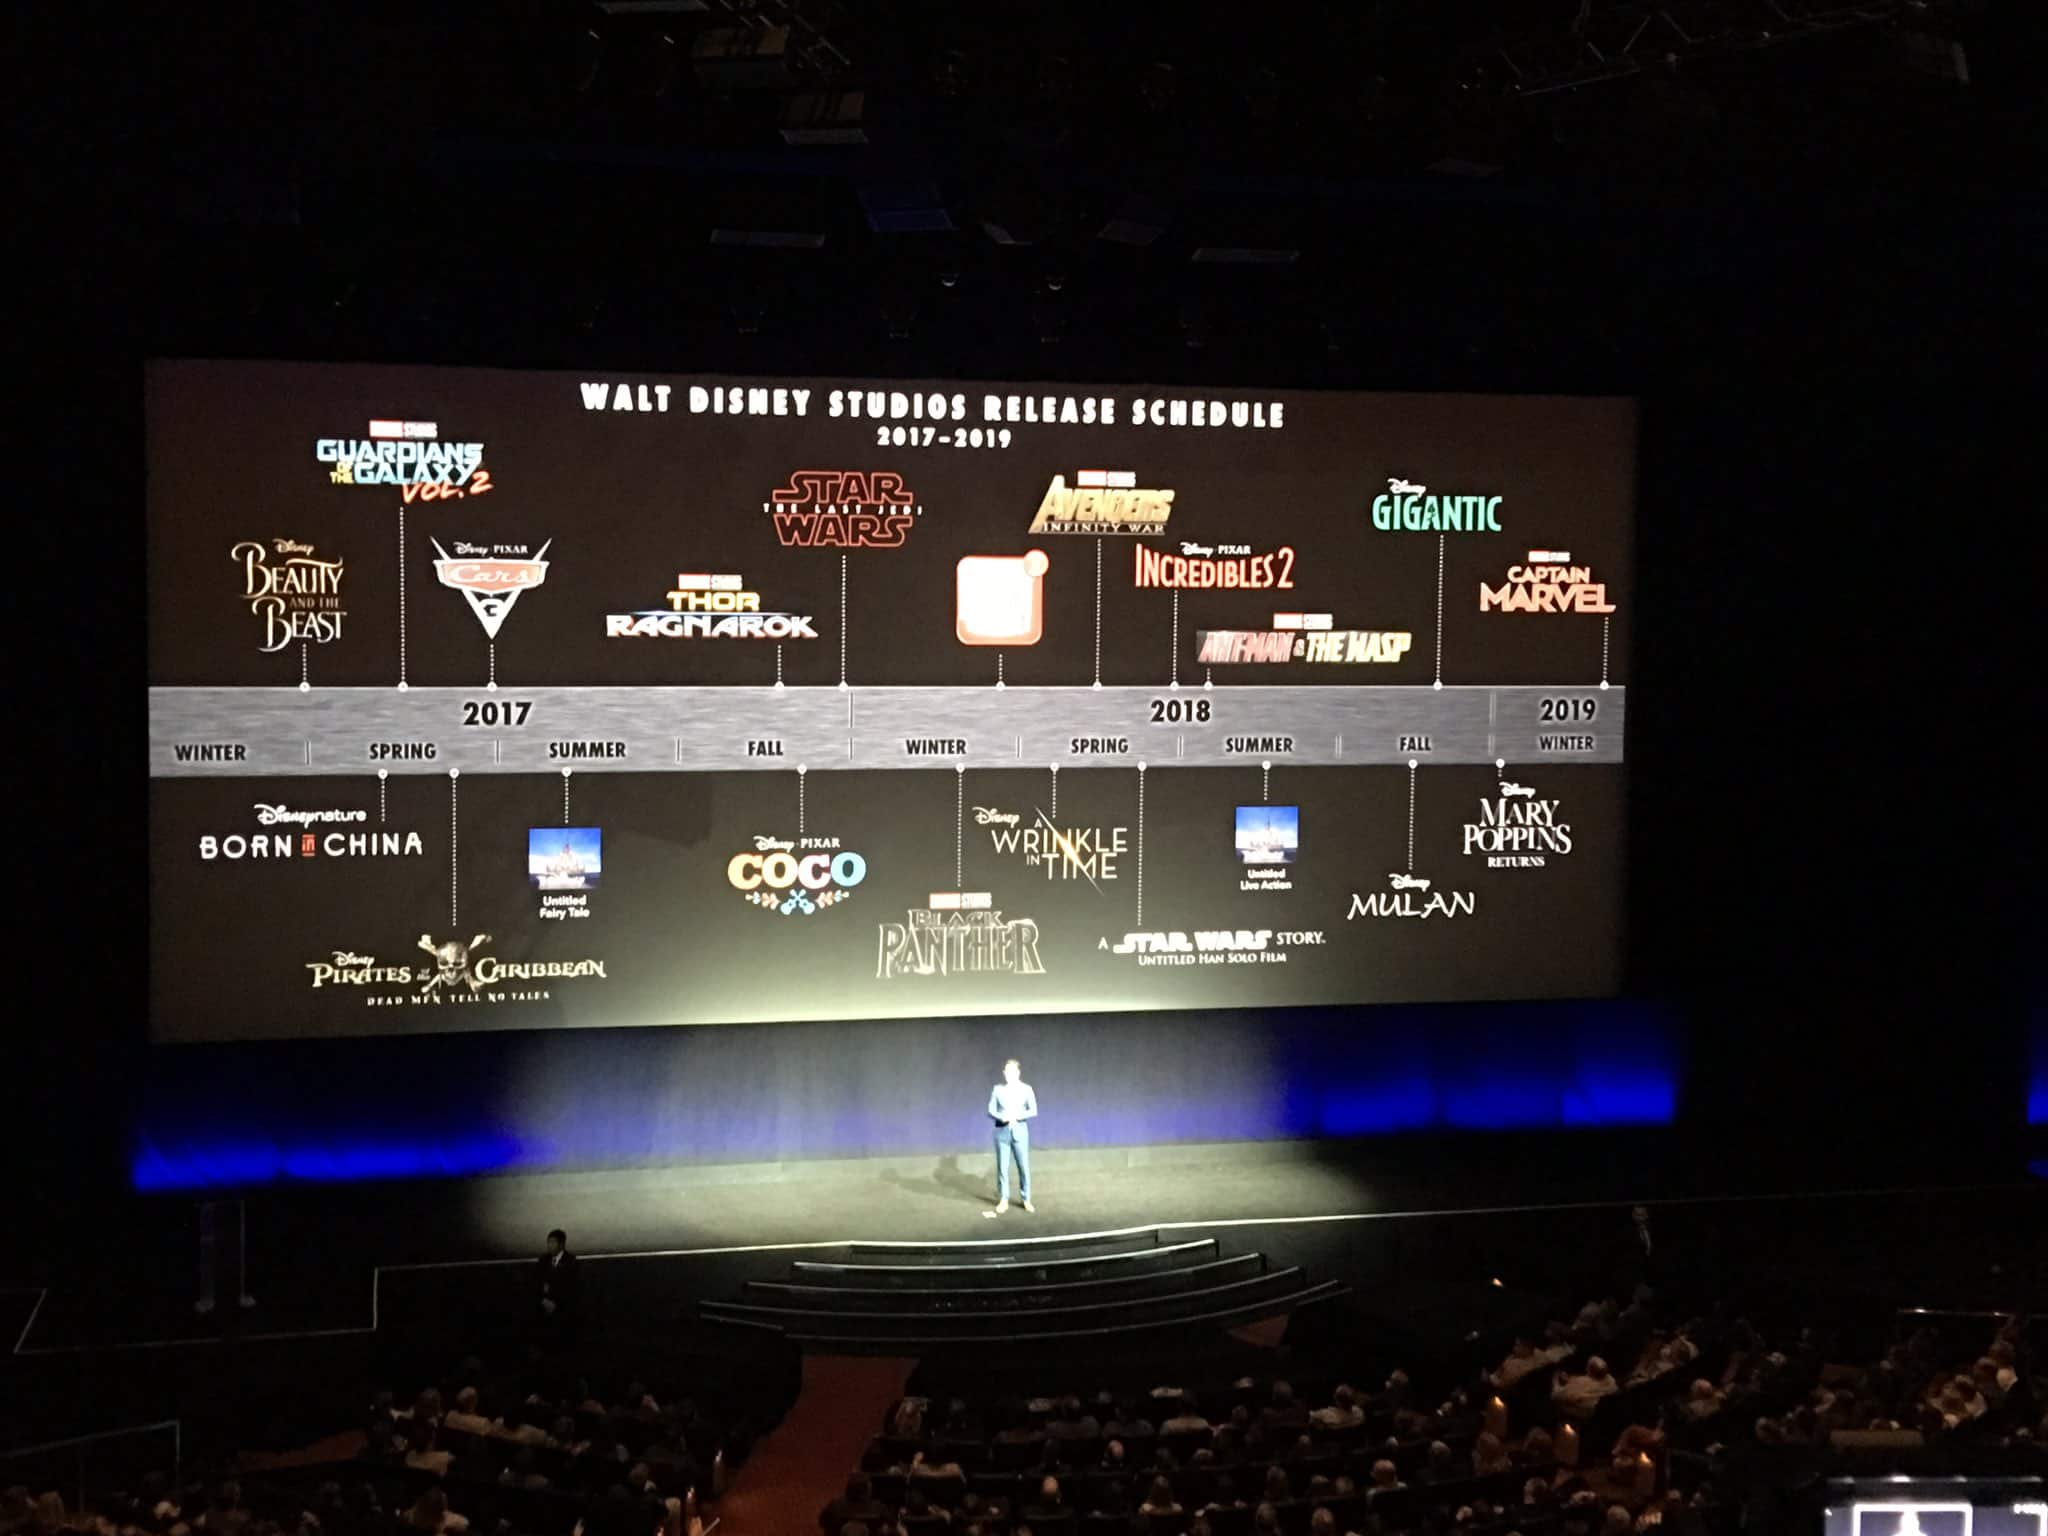 Here is Disney's Full Release Schedule of Movies Up Until